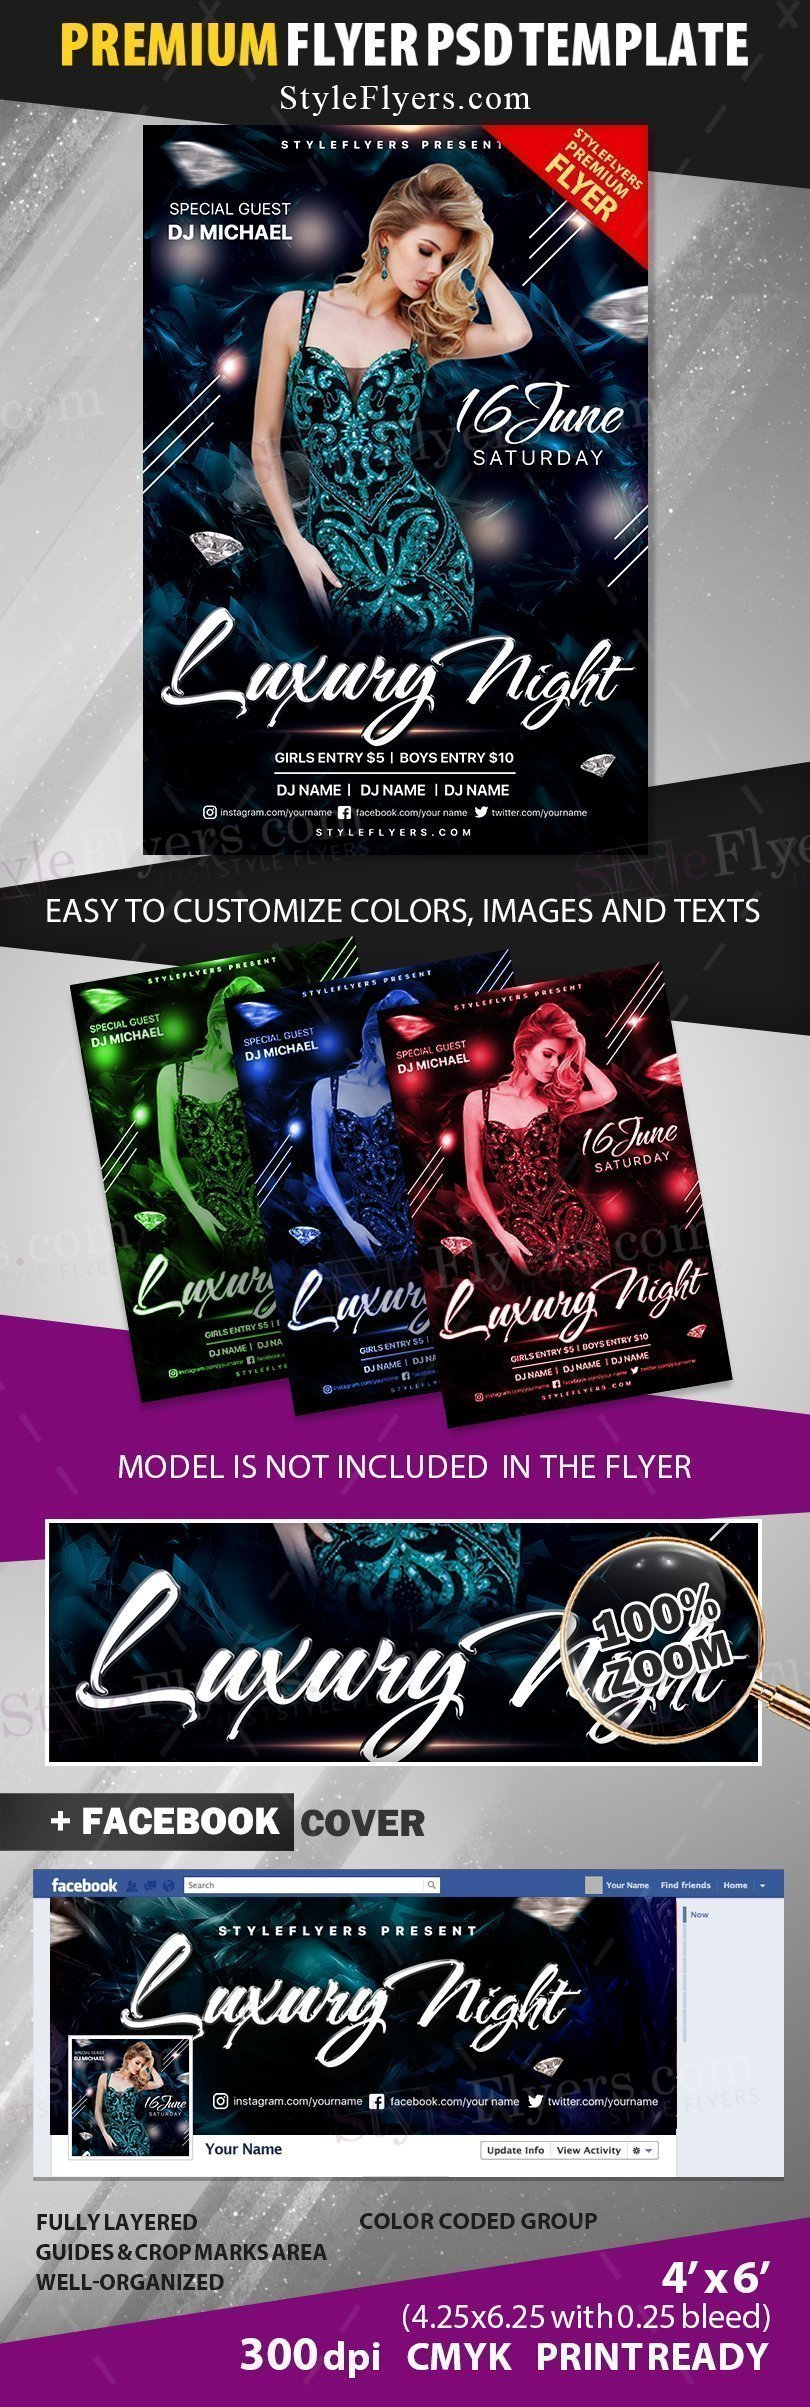 preview_luxury night_psd_flyer